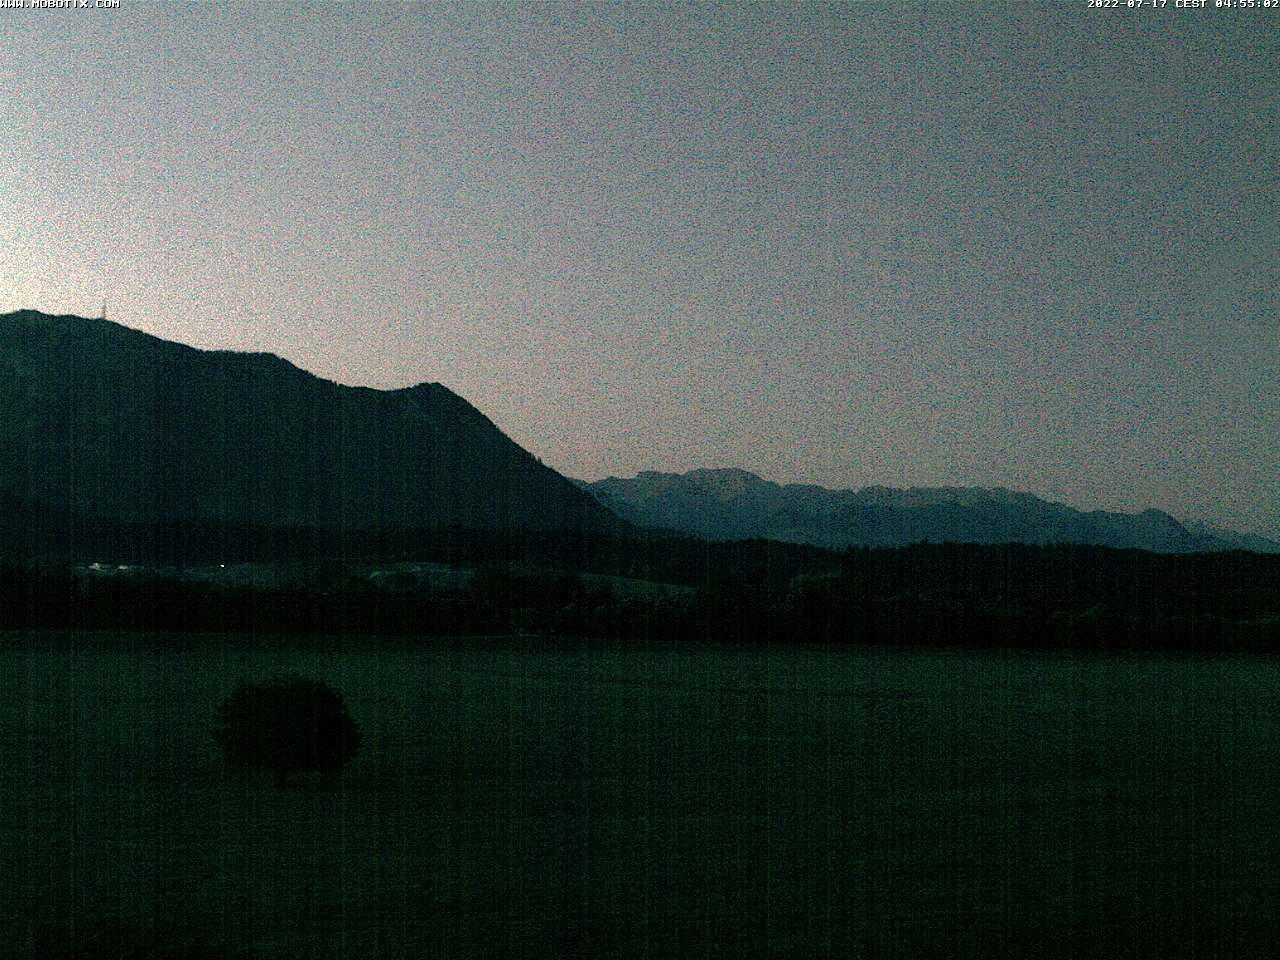 Immenstadt-Seifen and the German Alps